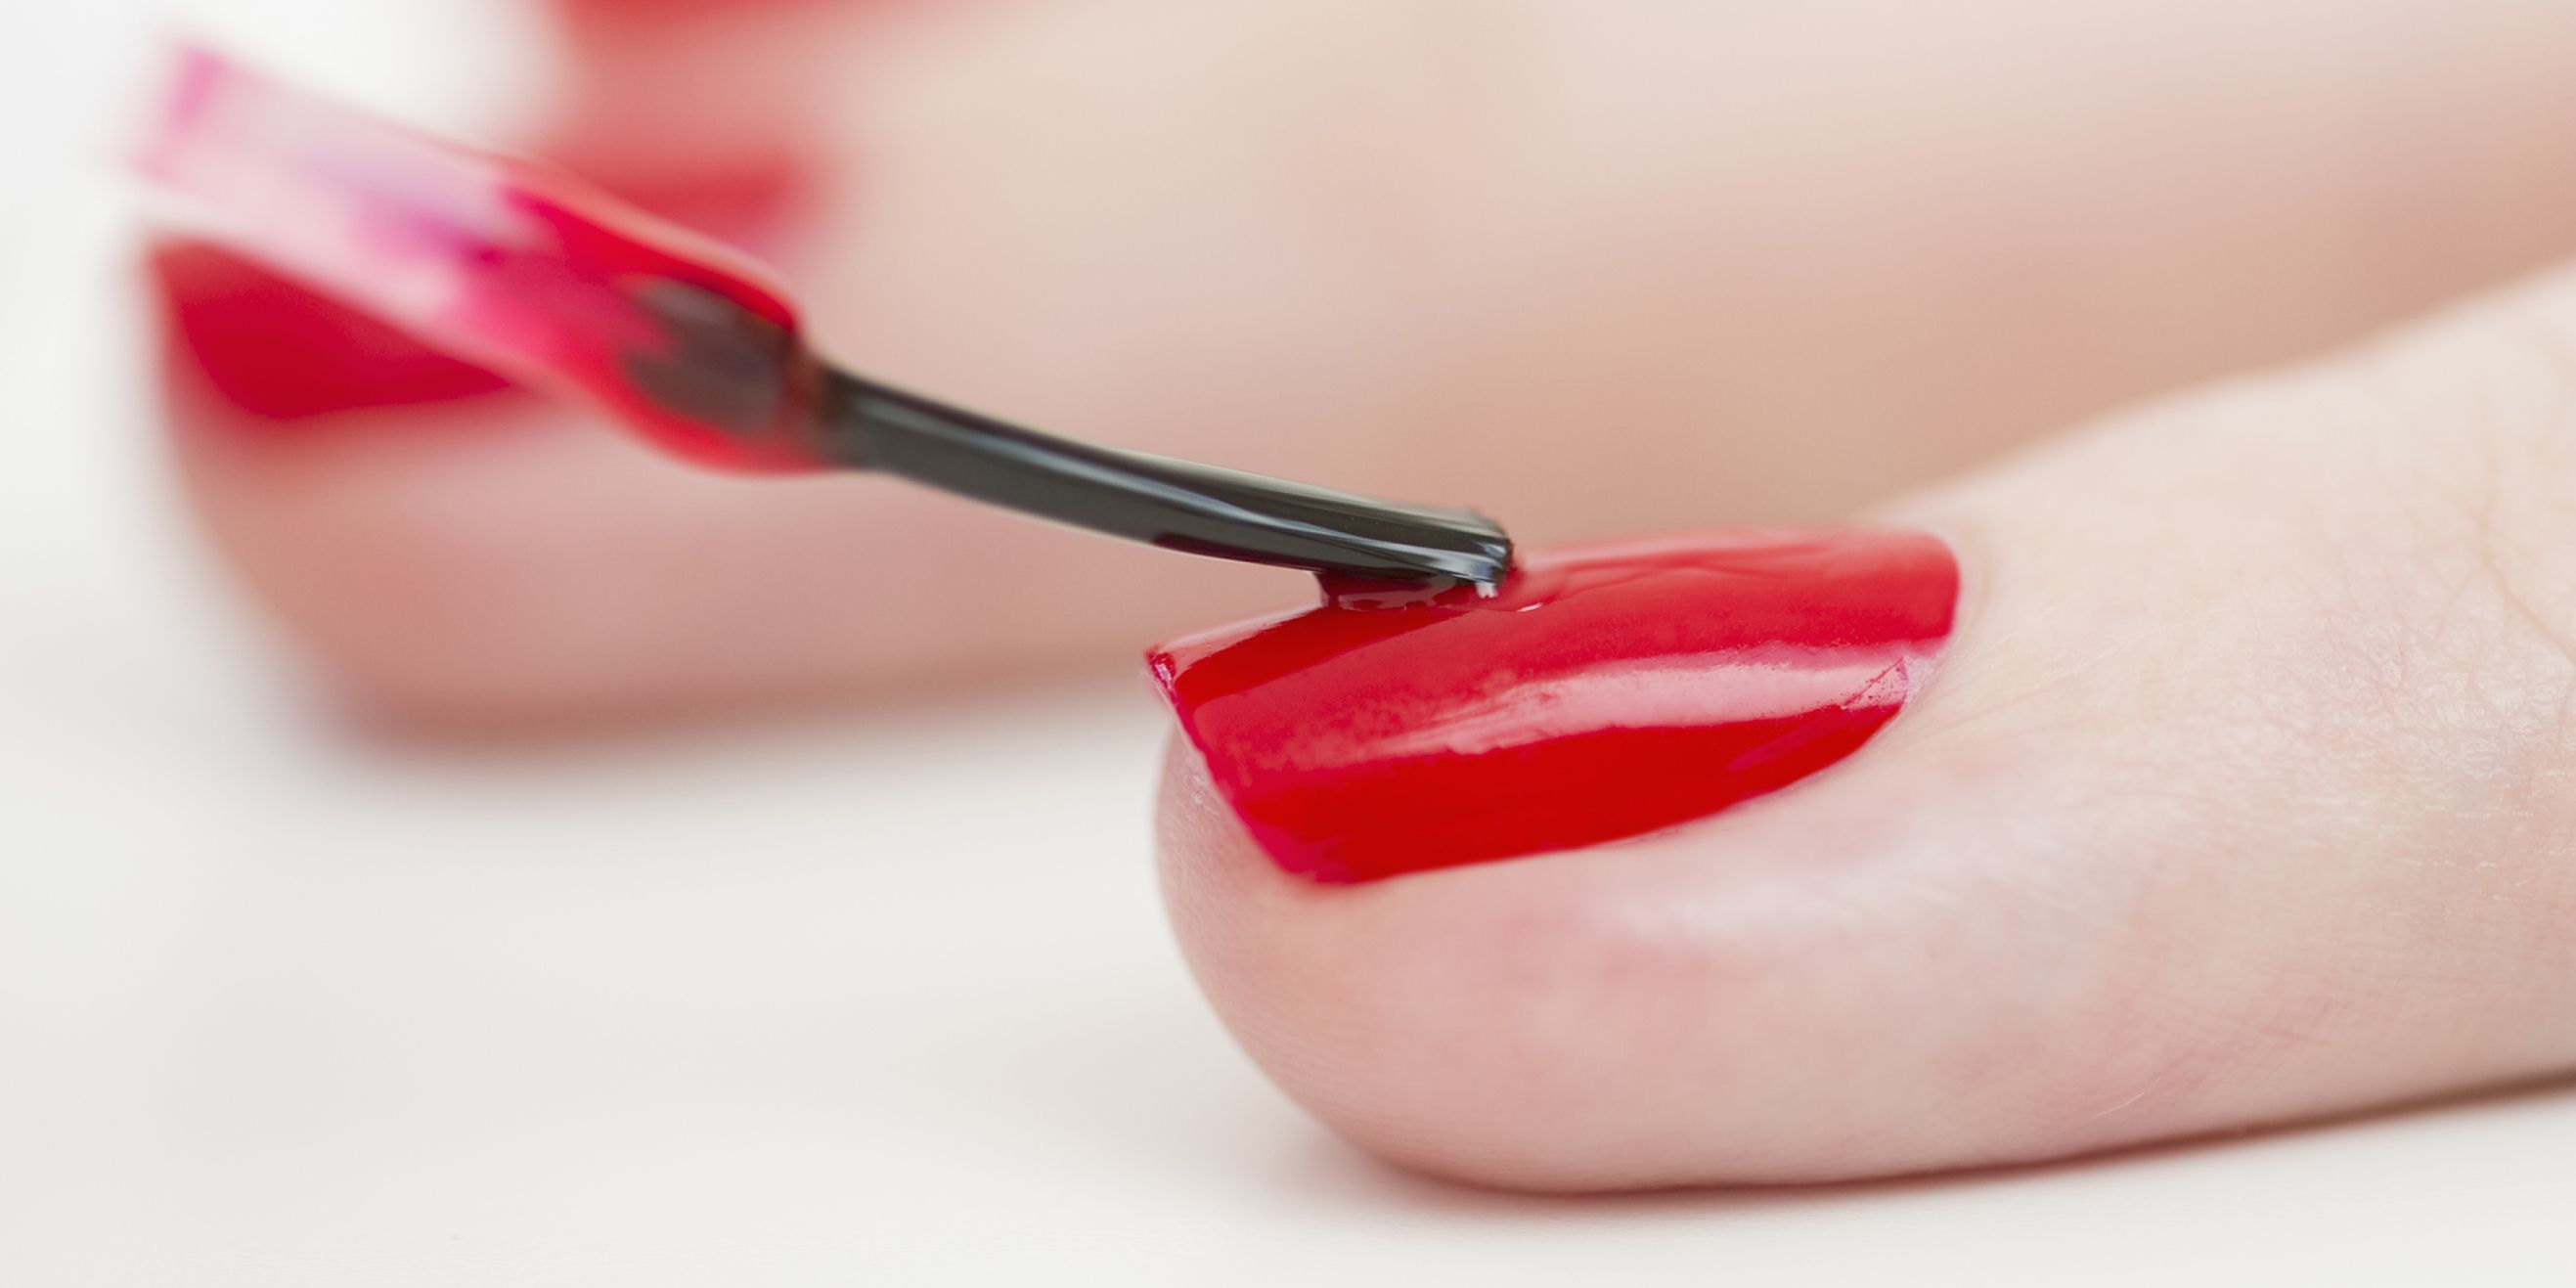 How to Paint Your Nails Without Getting Polish on Fingers — Vaseline ...